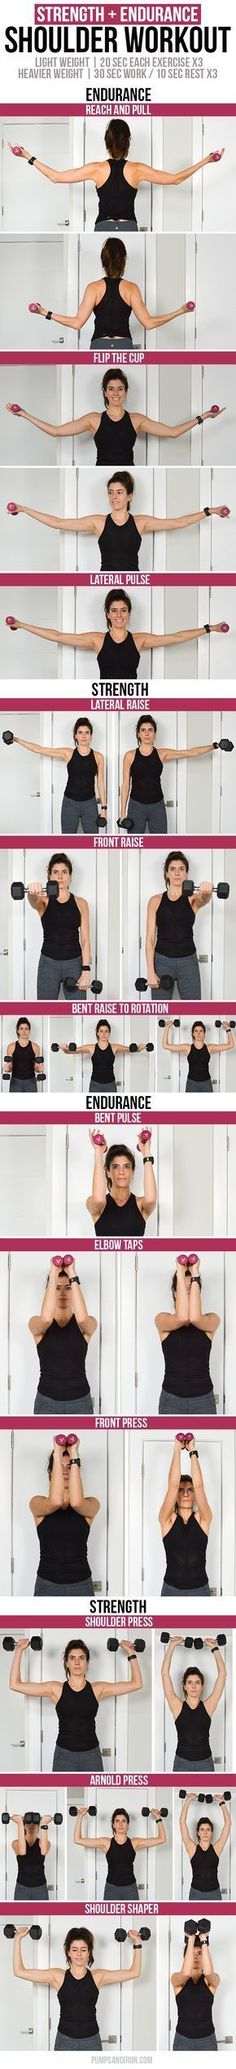 Upper body workoutUpper body workout